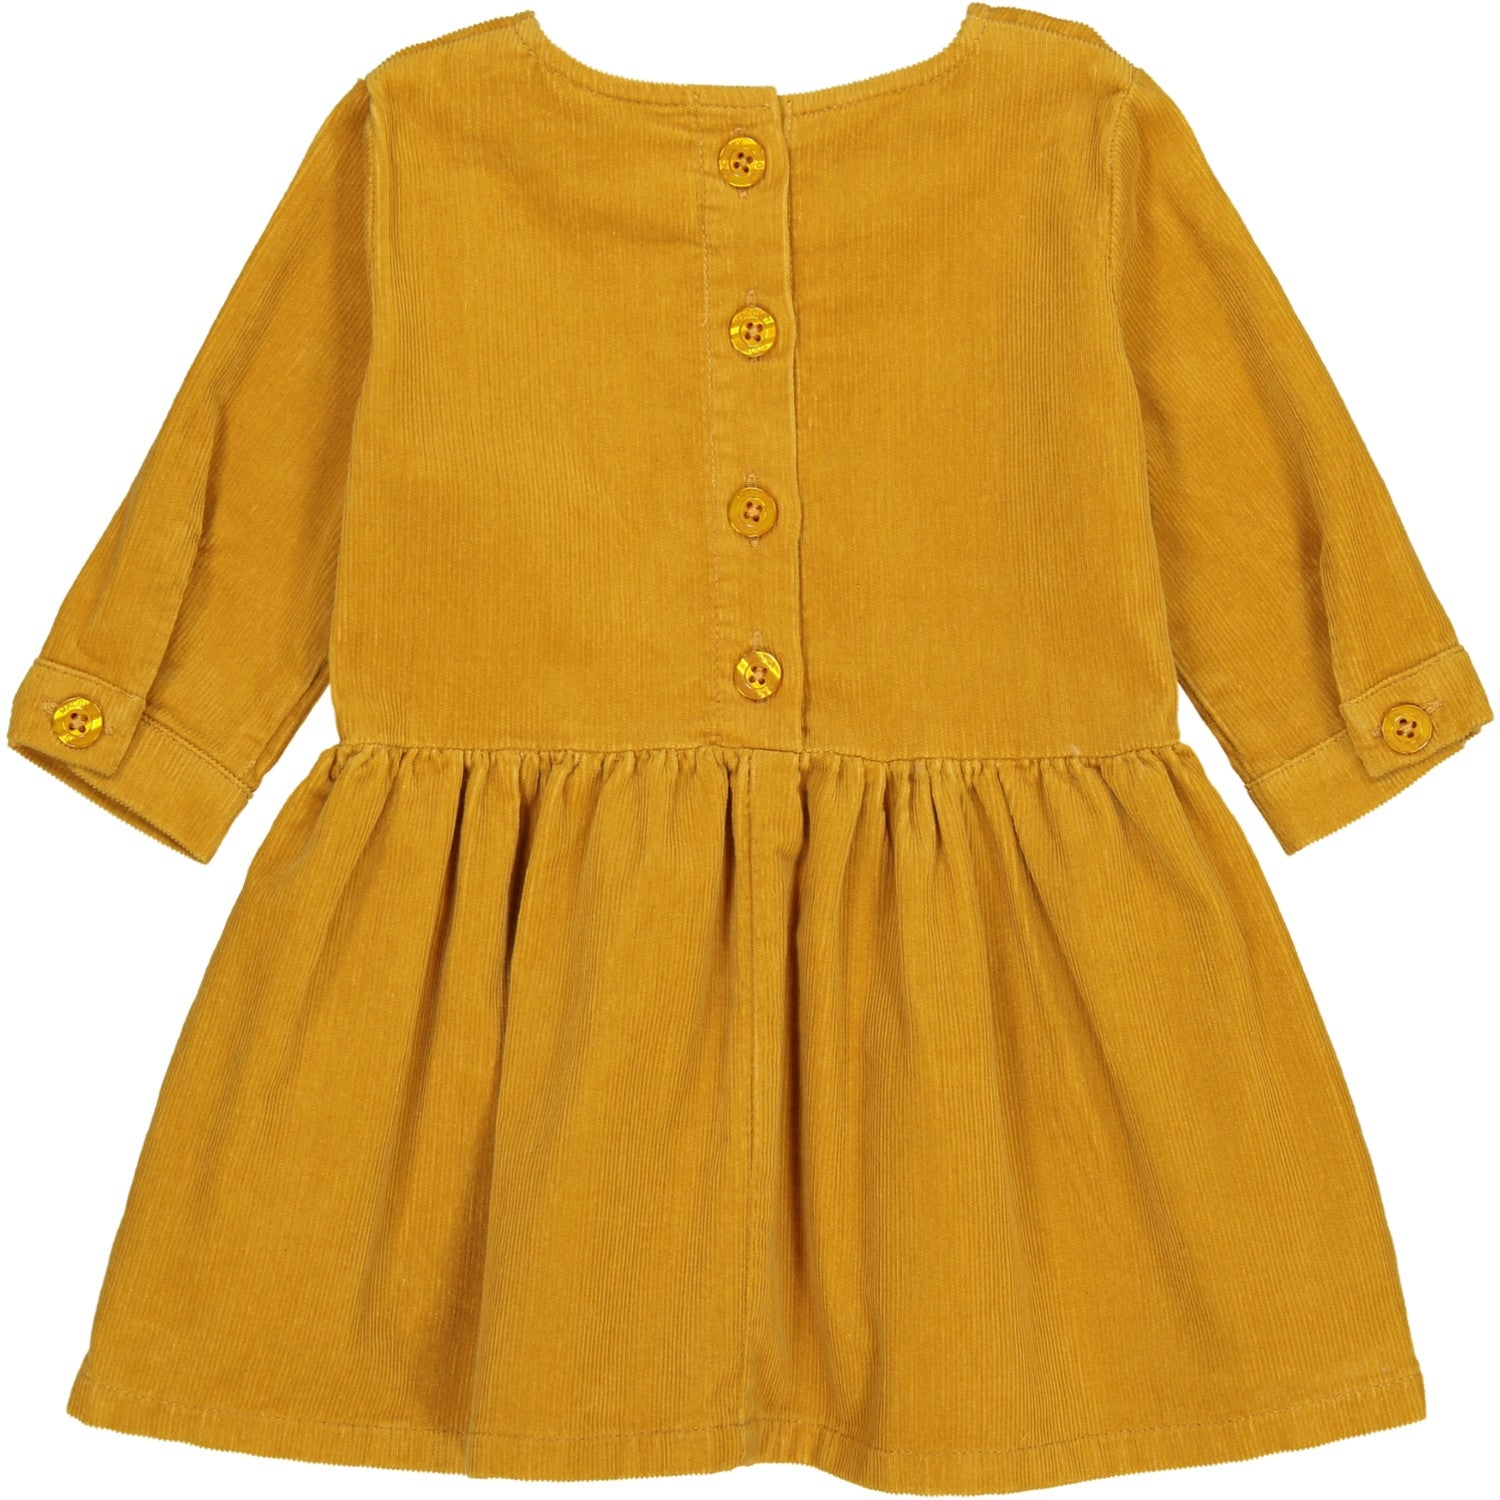 Freya Mustard Corduroy Smock Dress